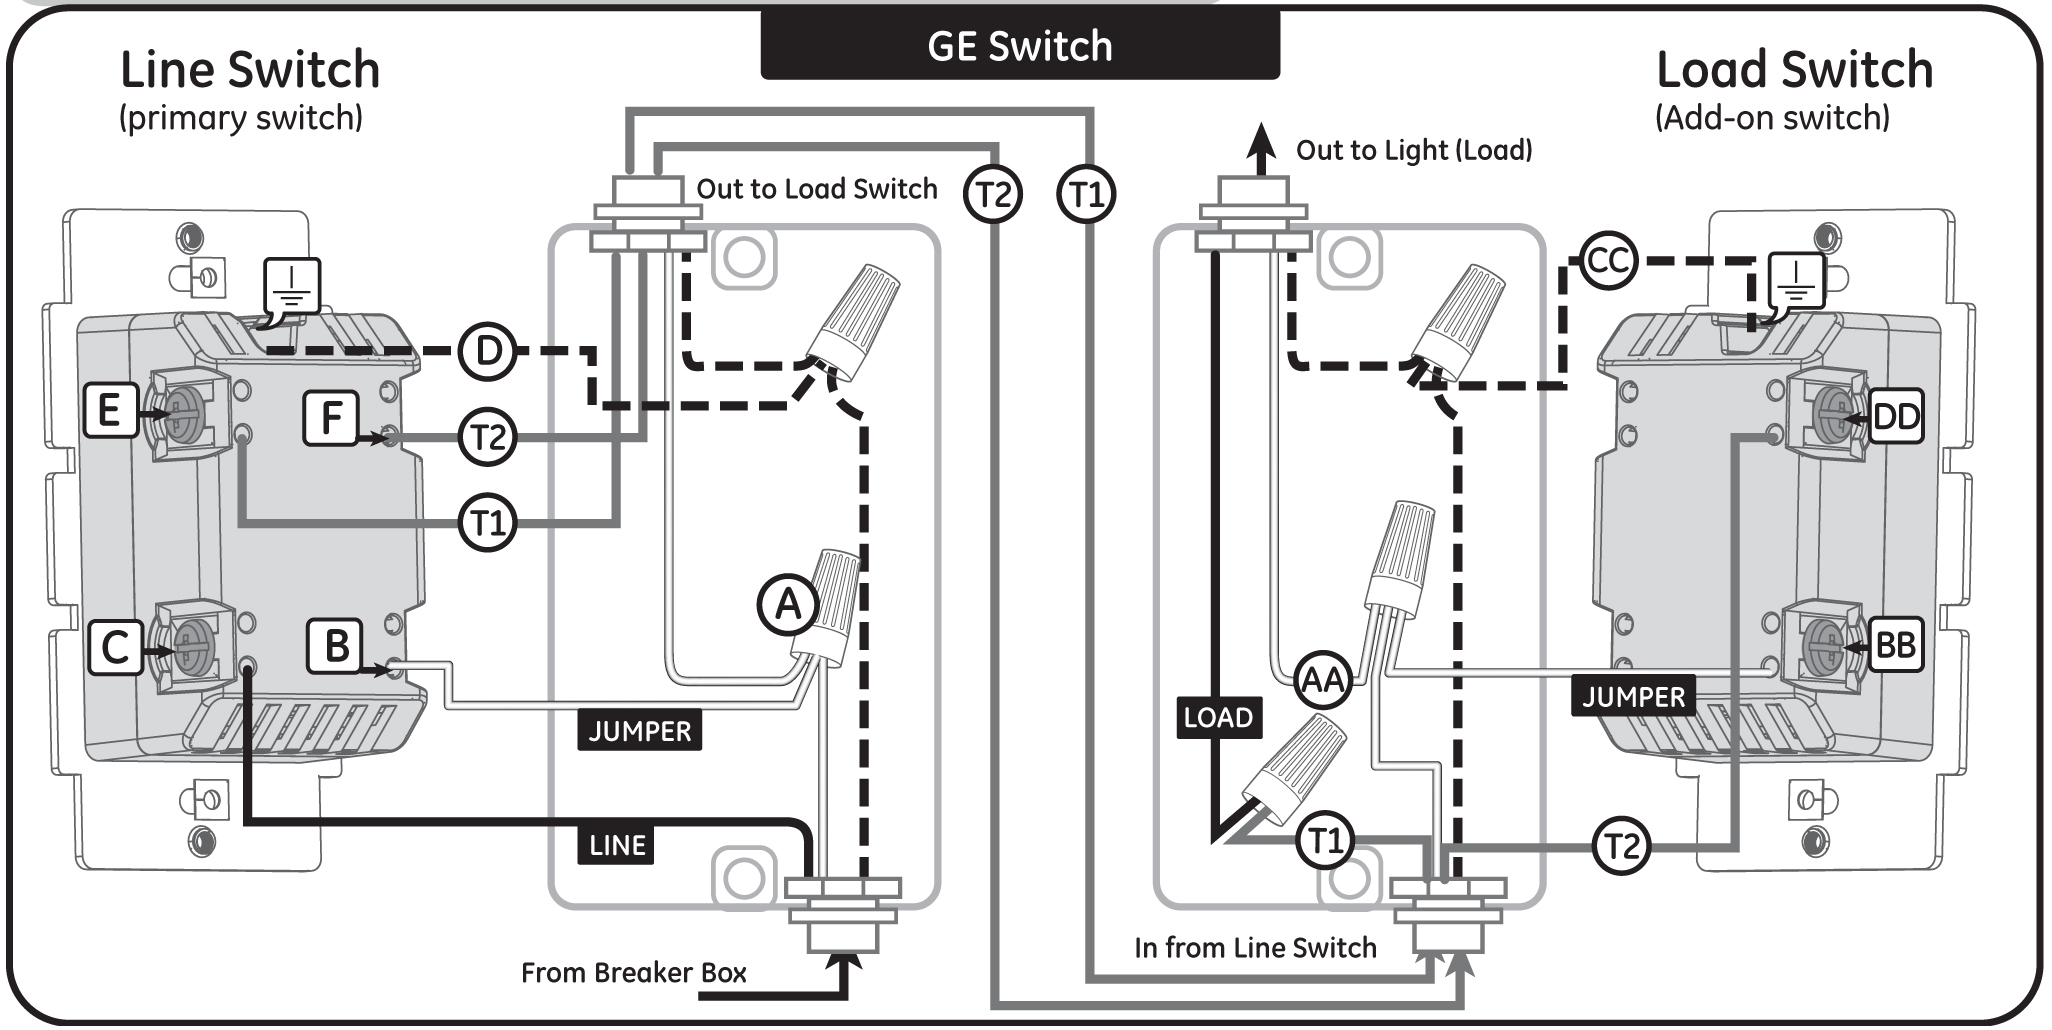 Leviton Dimmer Wiring Diagram 3 Way Copy Diagram Leviton 3